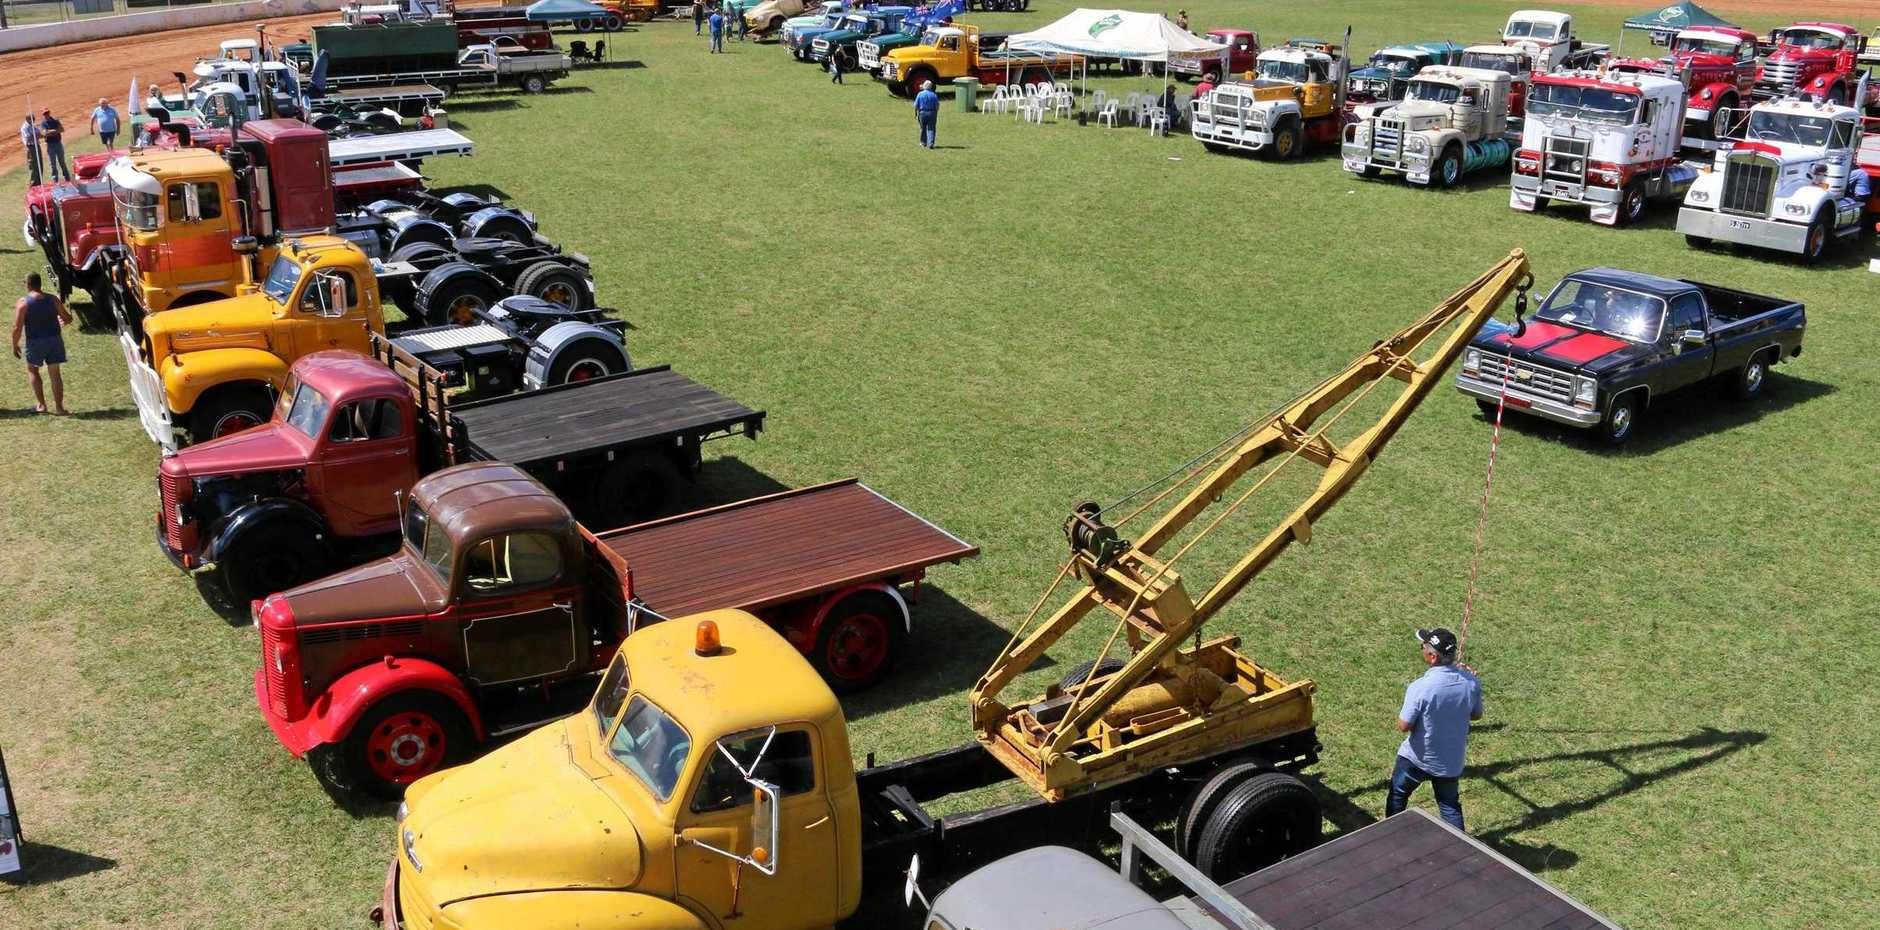 The HCVAQ Historic Truck, Tractor and Machinery Show is one of the events coming up this week